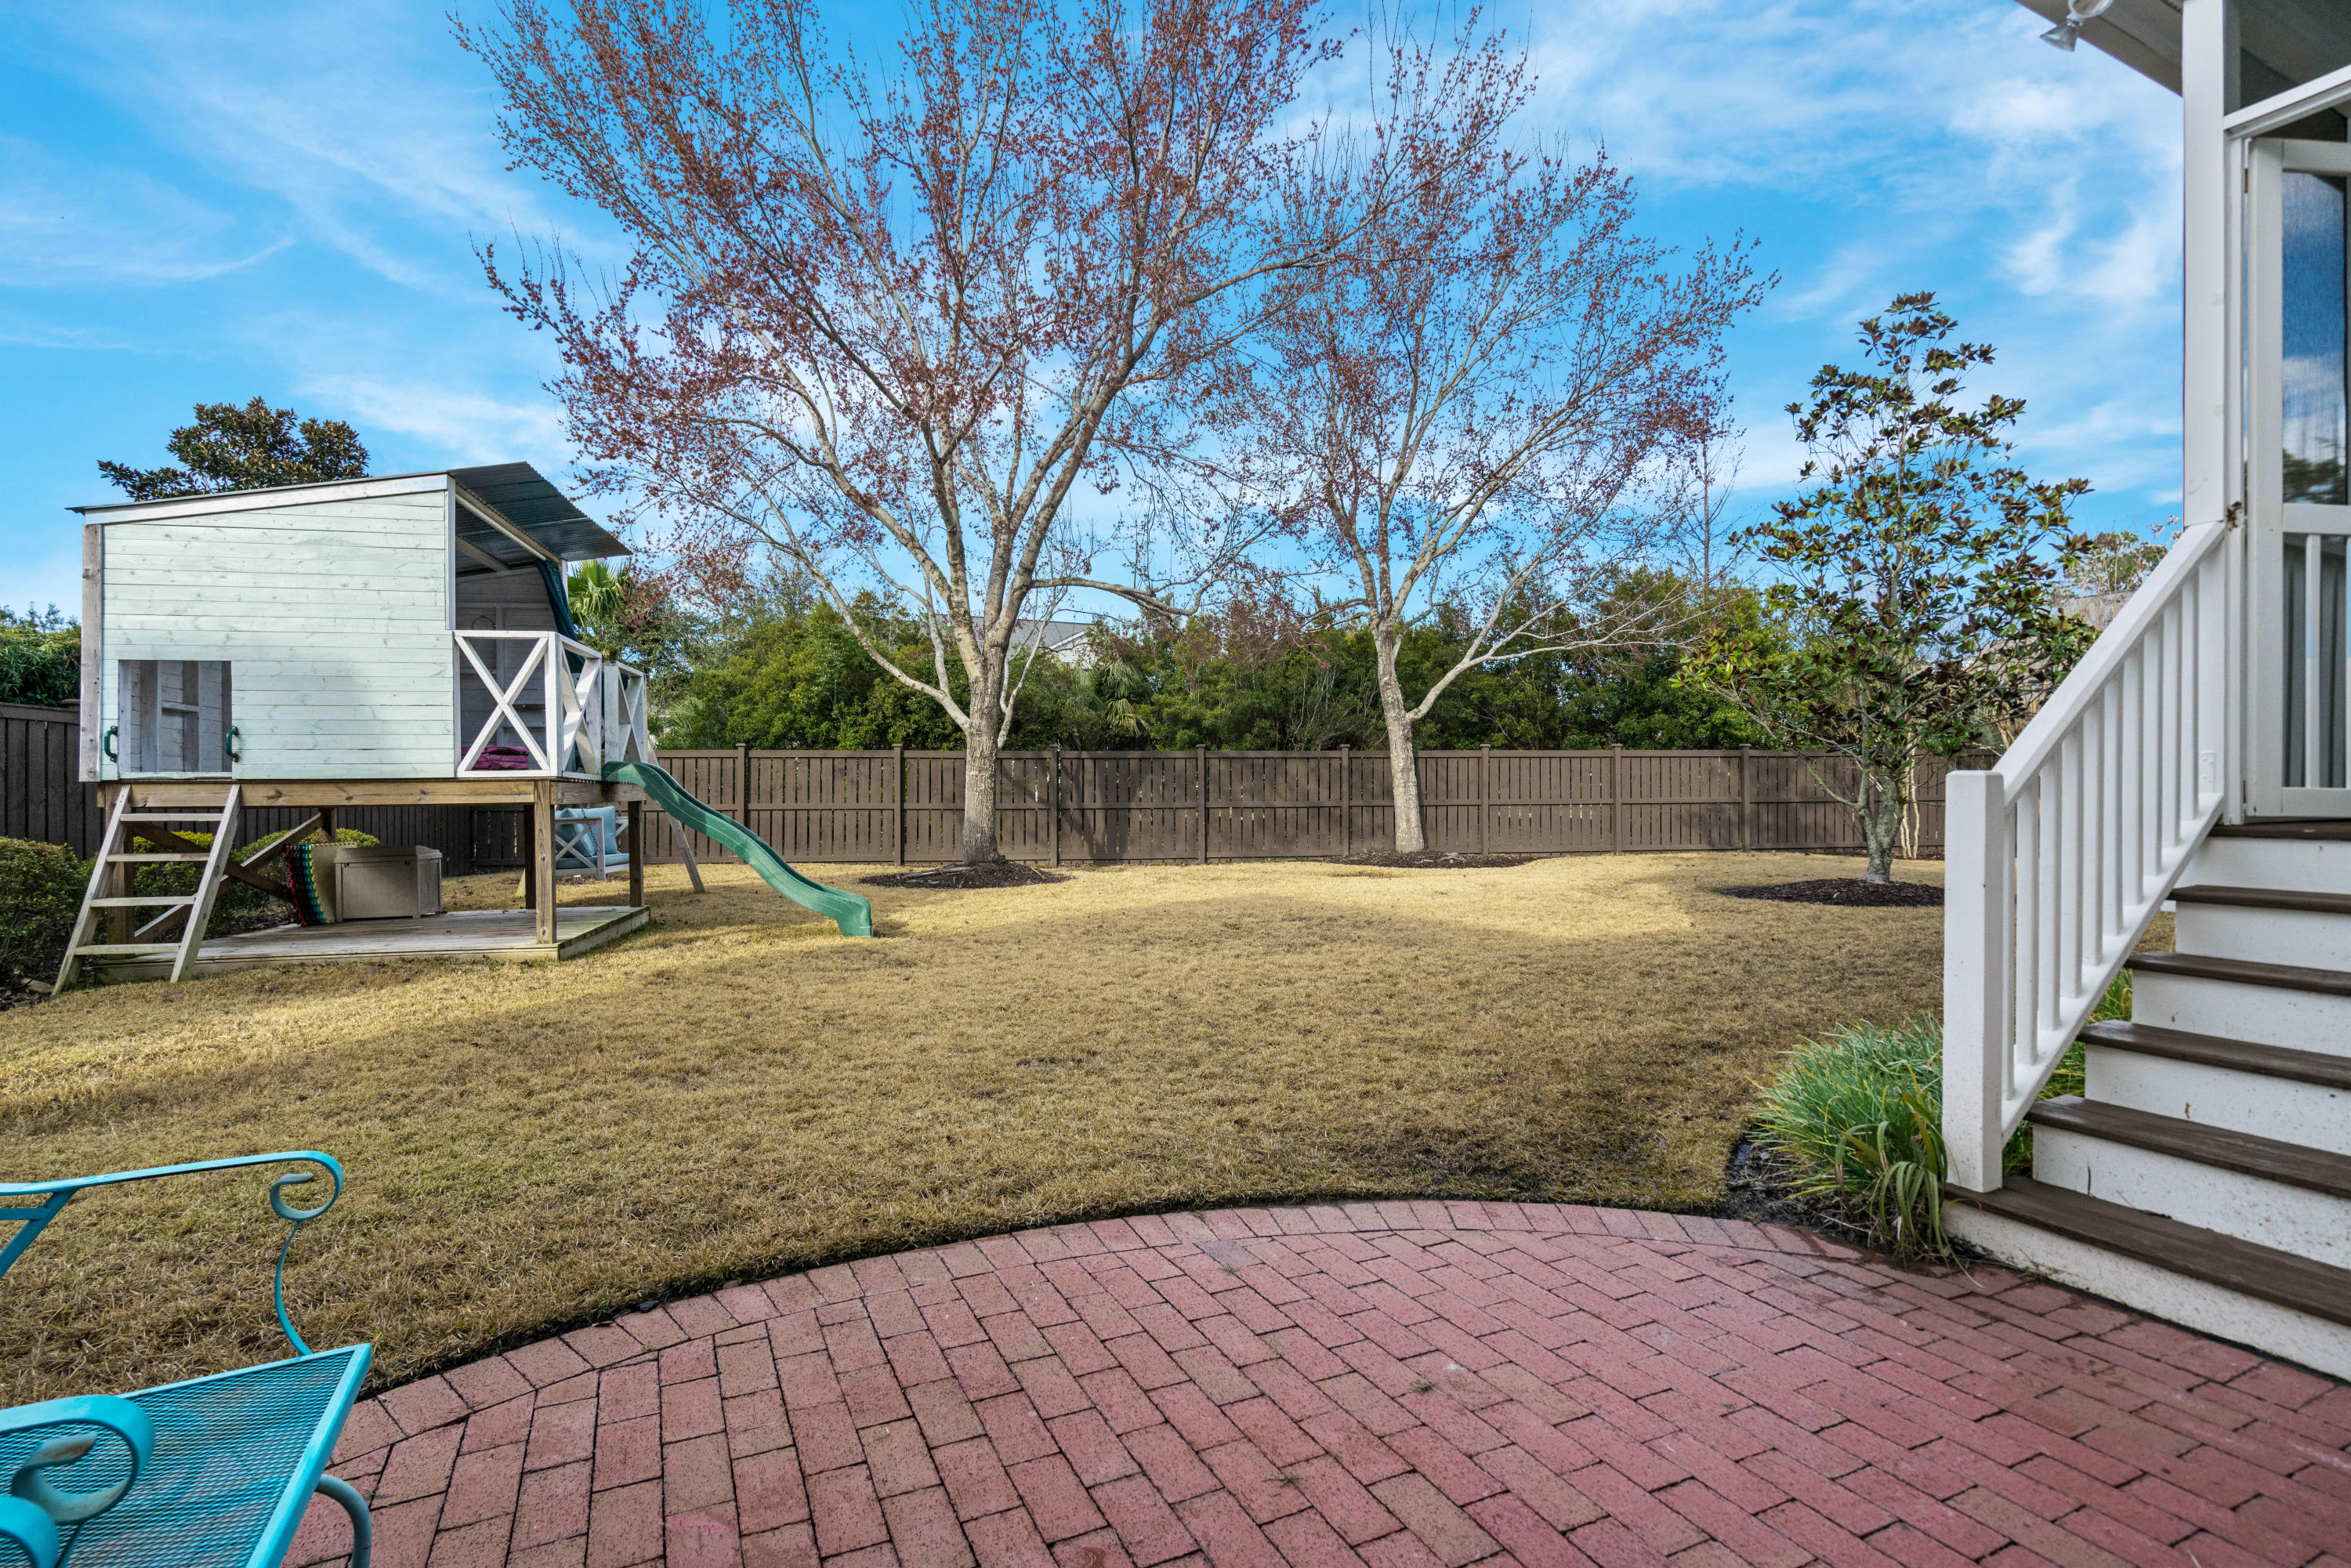 Dunes West Homes For Sale - 1600 Willowick, Mount Pleasant, SC - 5